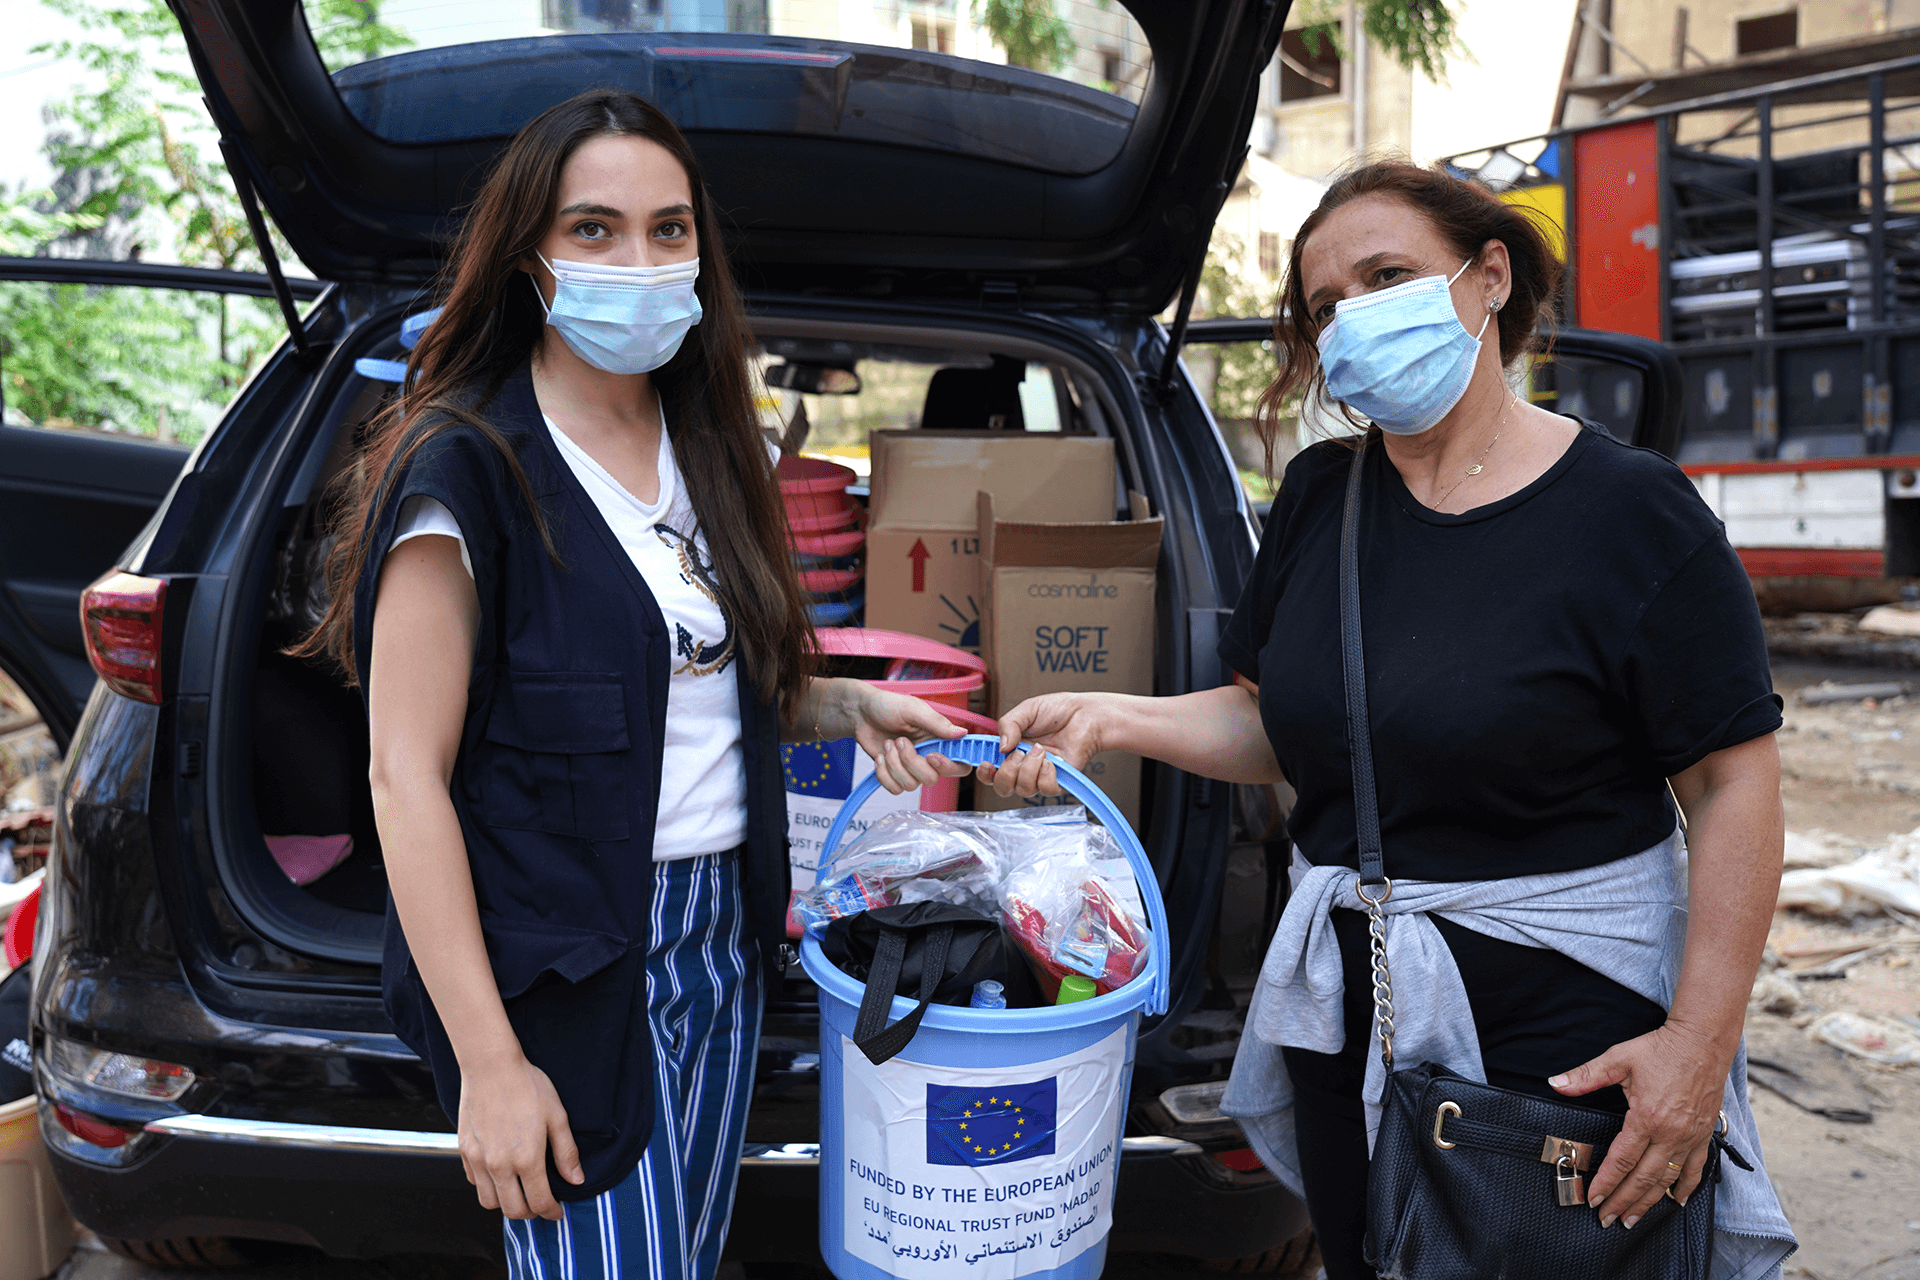 International Medical Corps distributed hygiene supplies to survivors and those working in and around the area of the explosion.